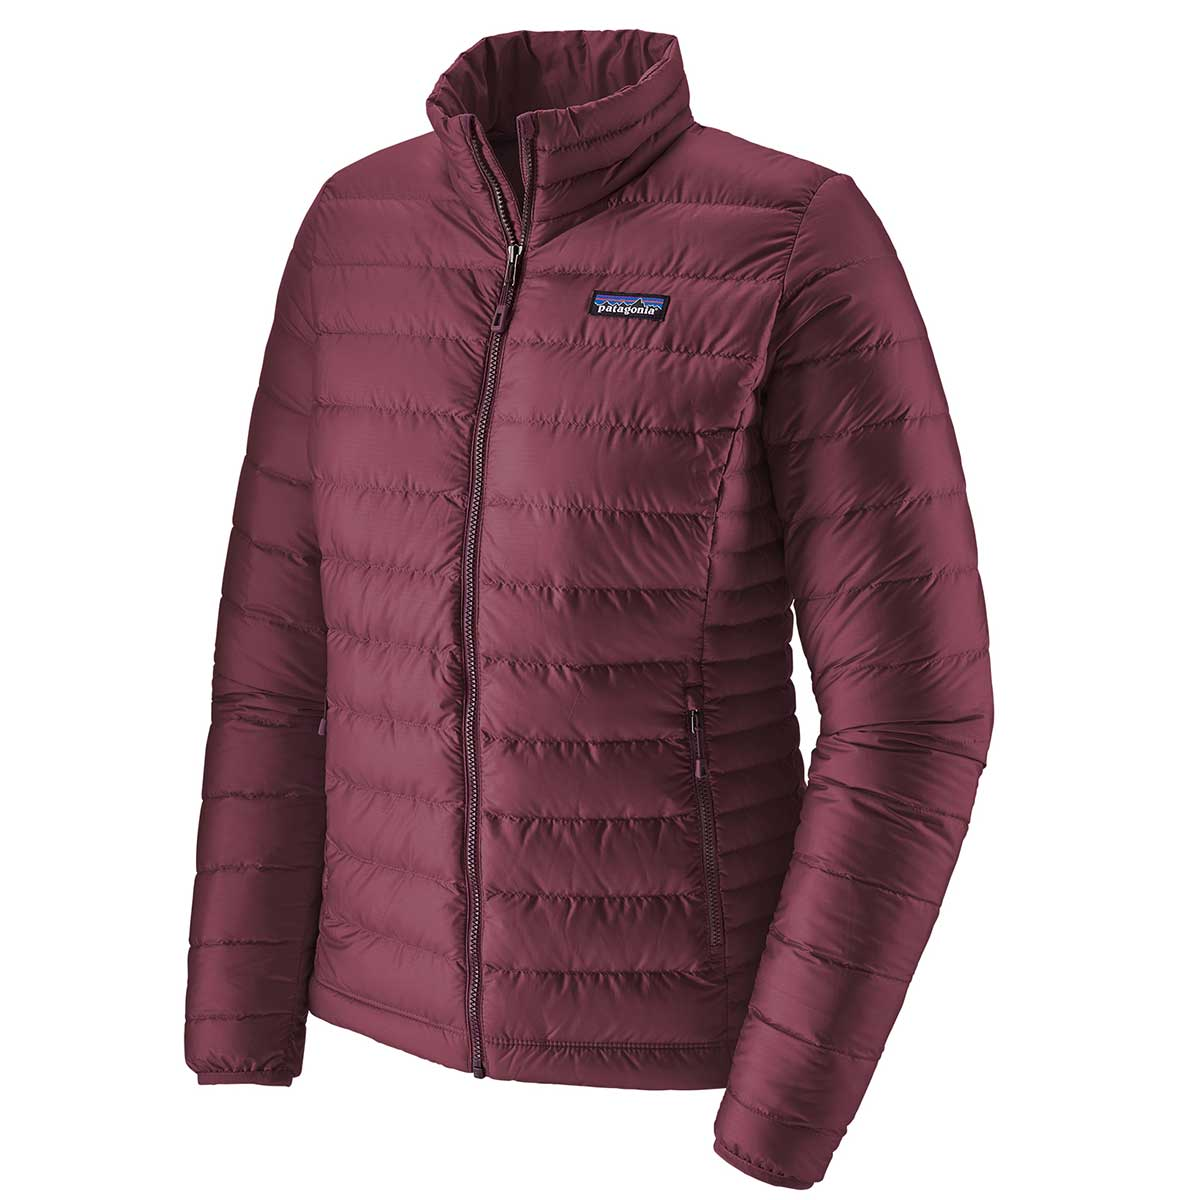 Patagonia women's Down Sweater Jacket in Light Balsamic front view